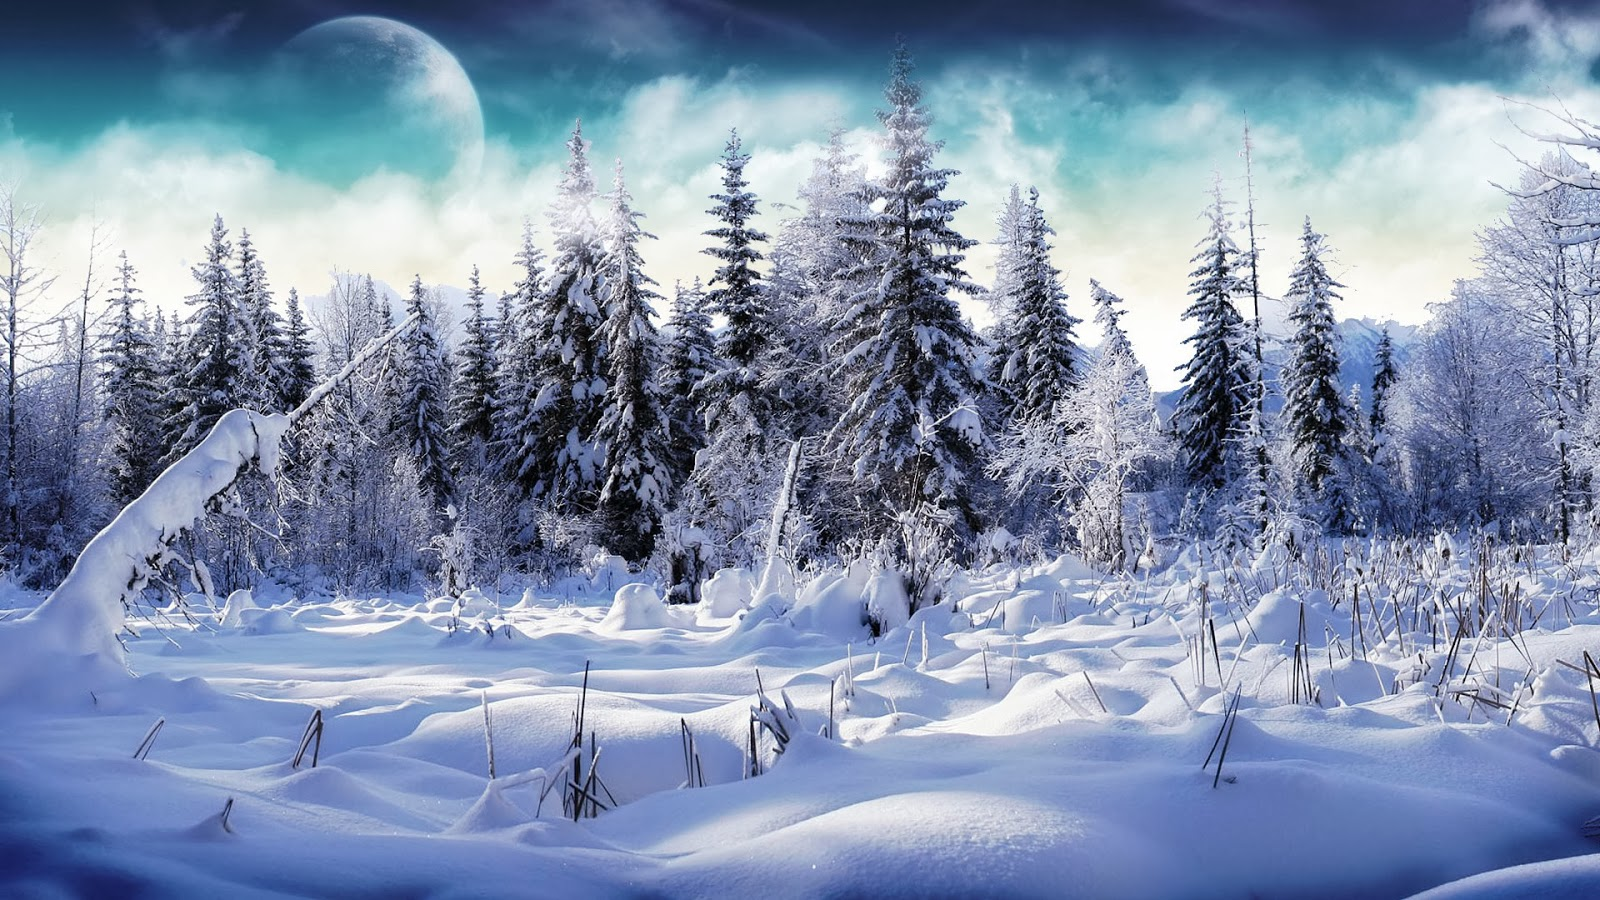 Snow Fall Winter Hd Wallpapers Hd Wallpapers Blog